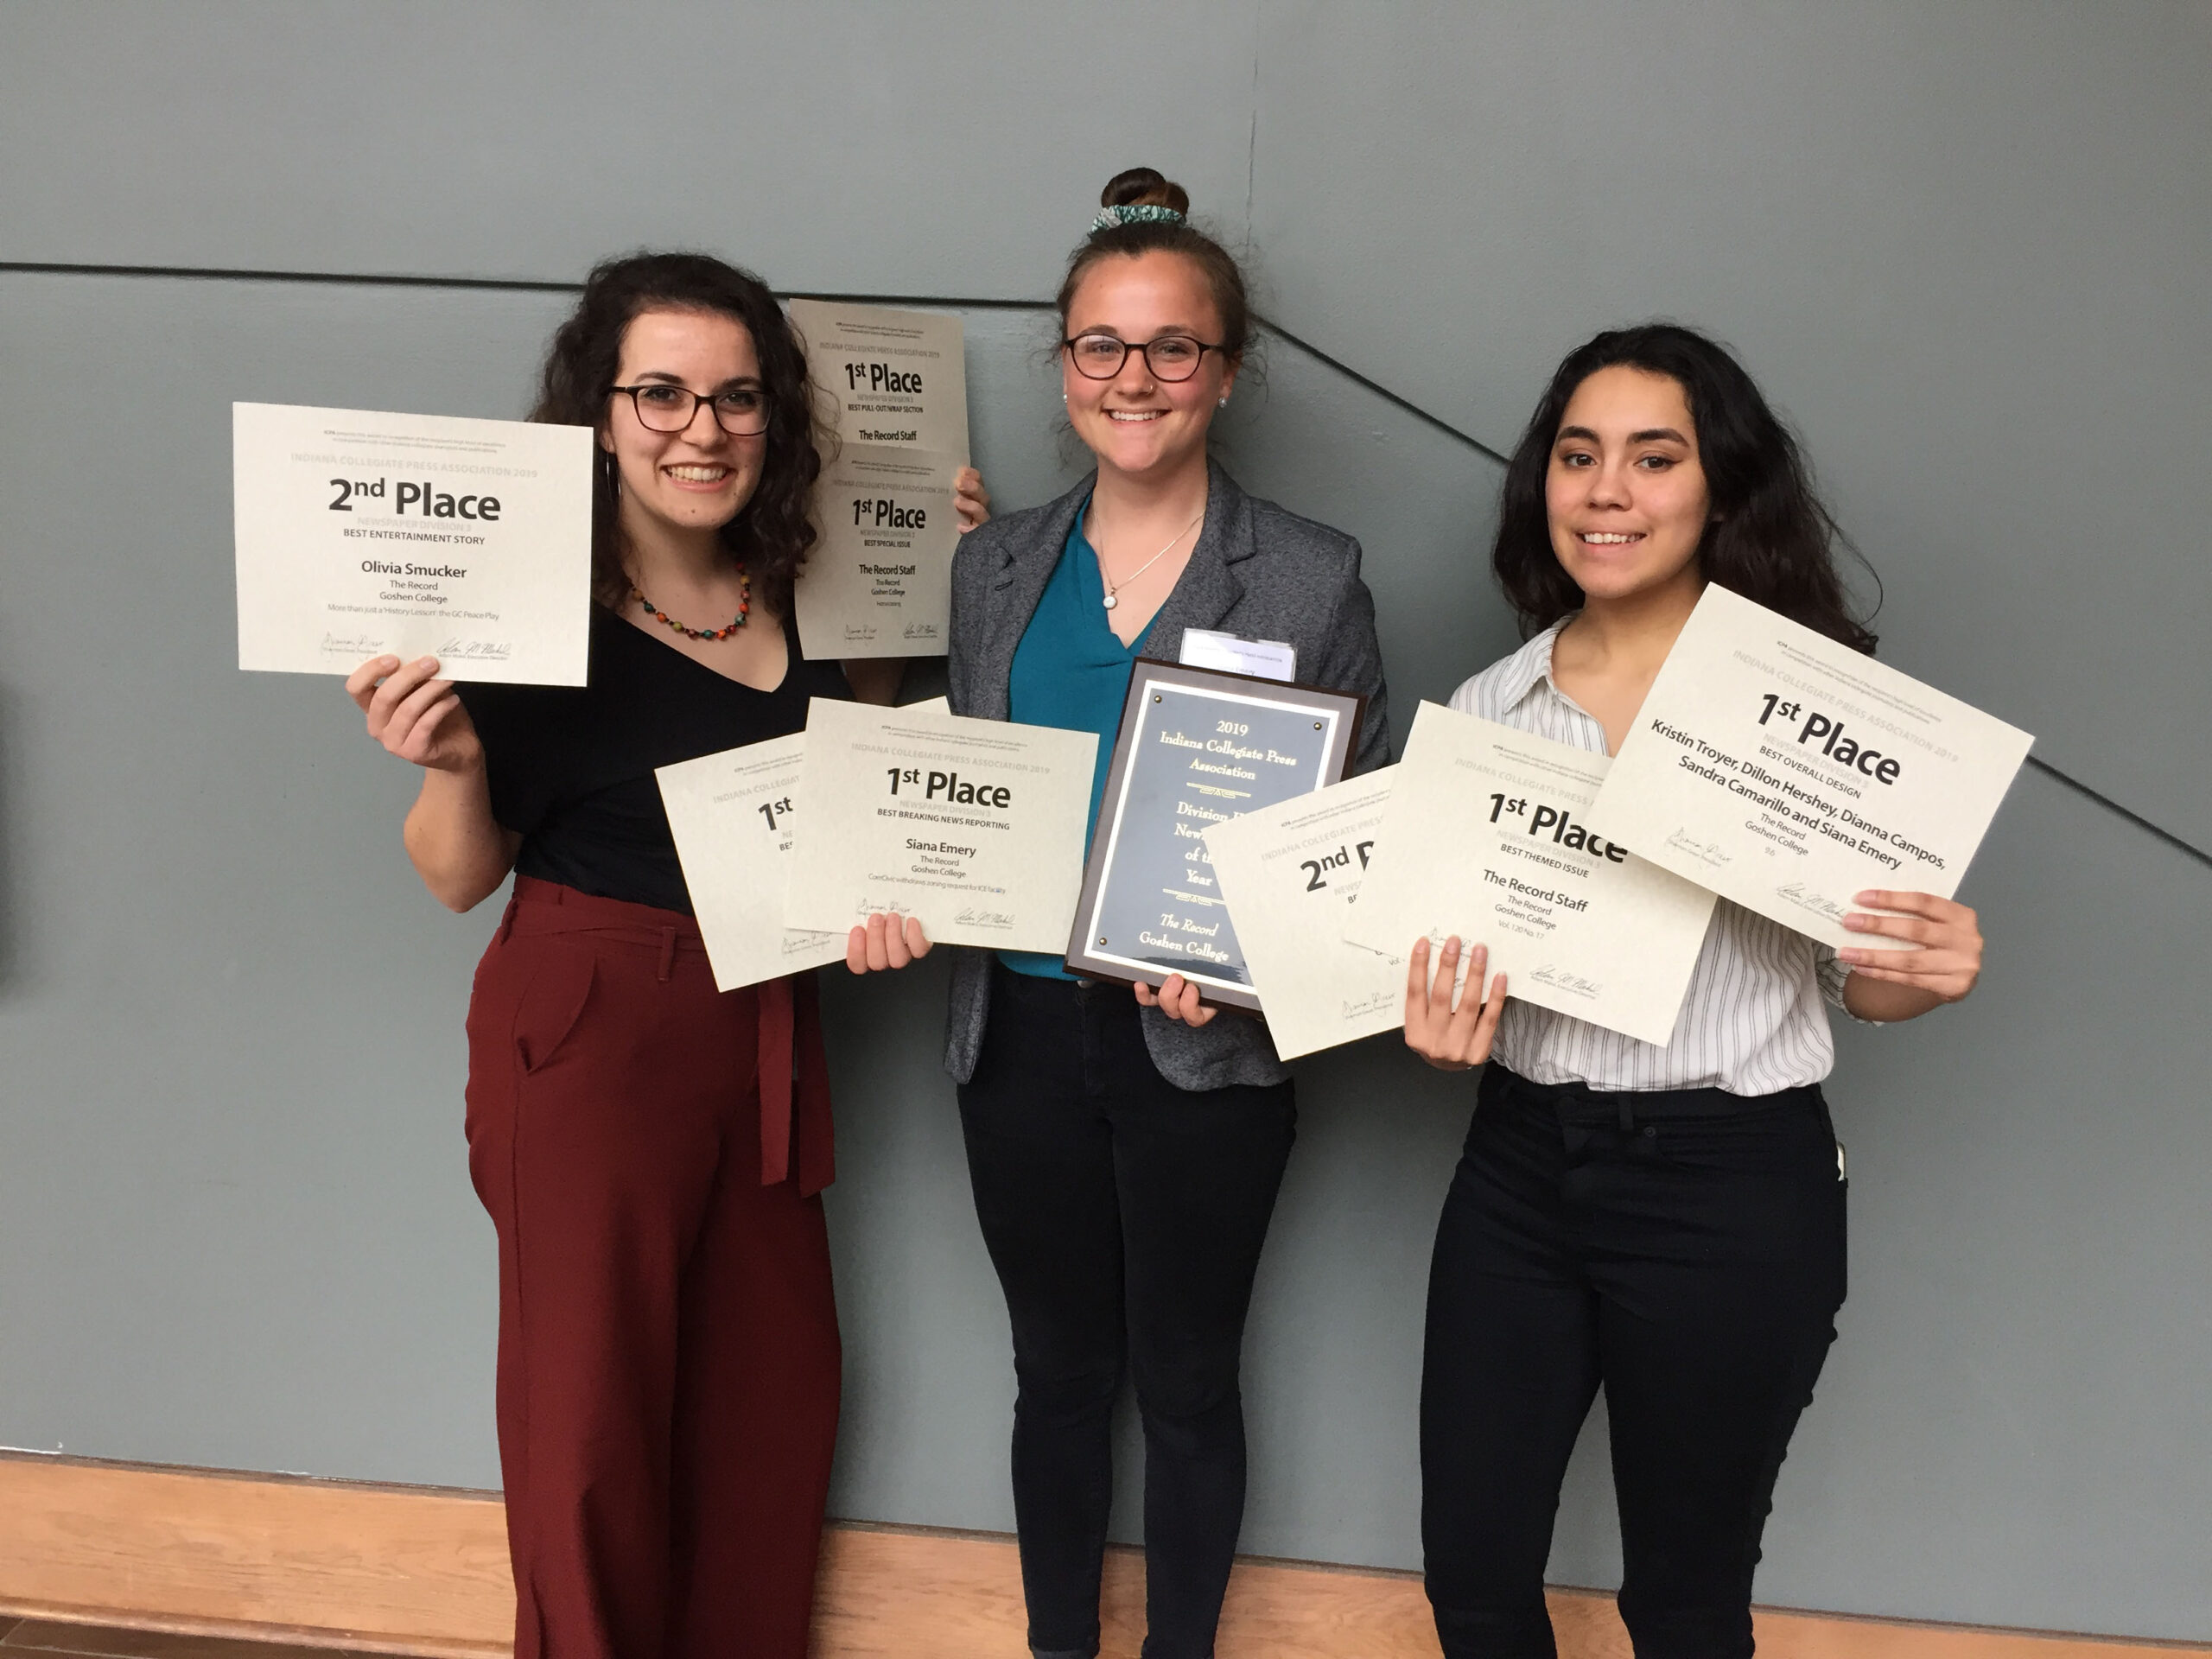 students pose with their ICPA awards